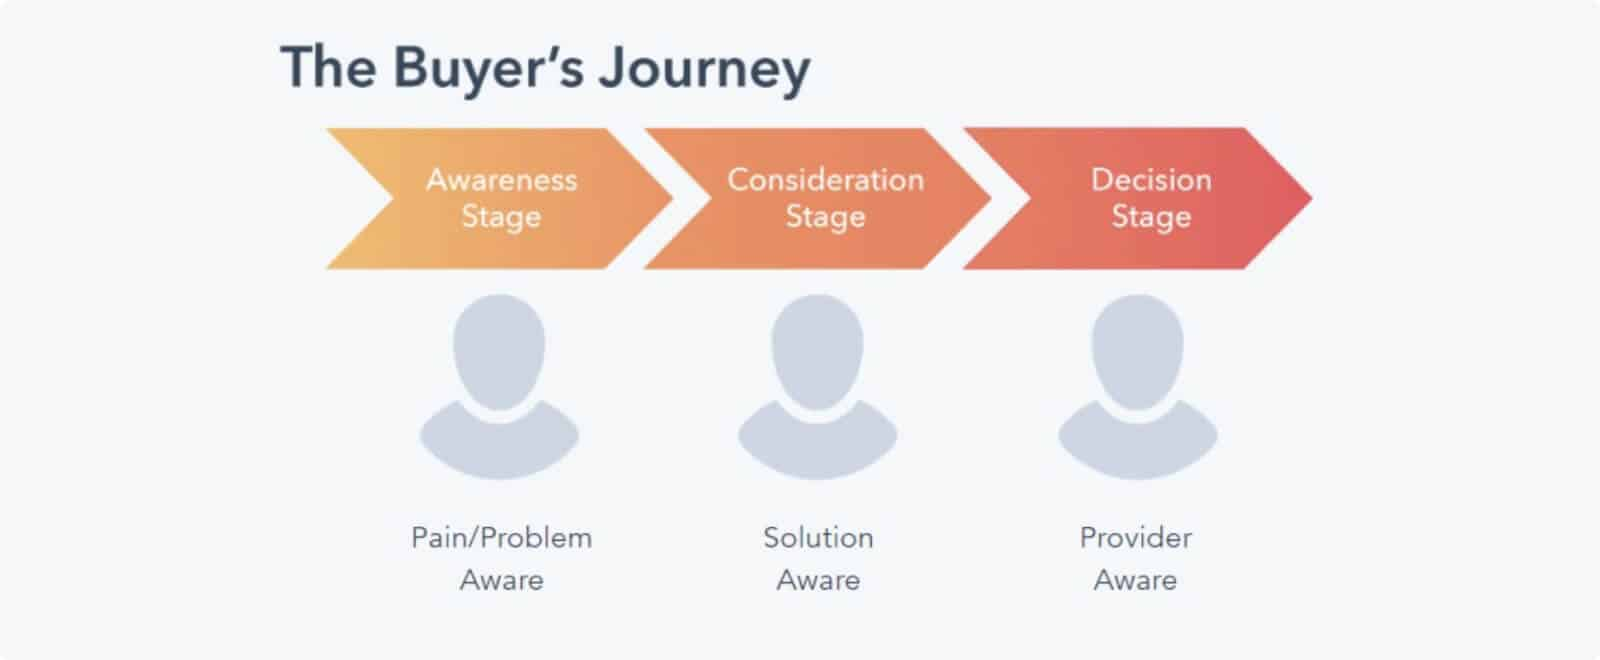 It's important to understand the buyer's journey.